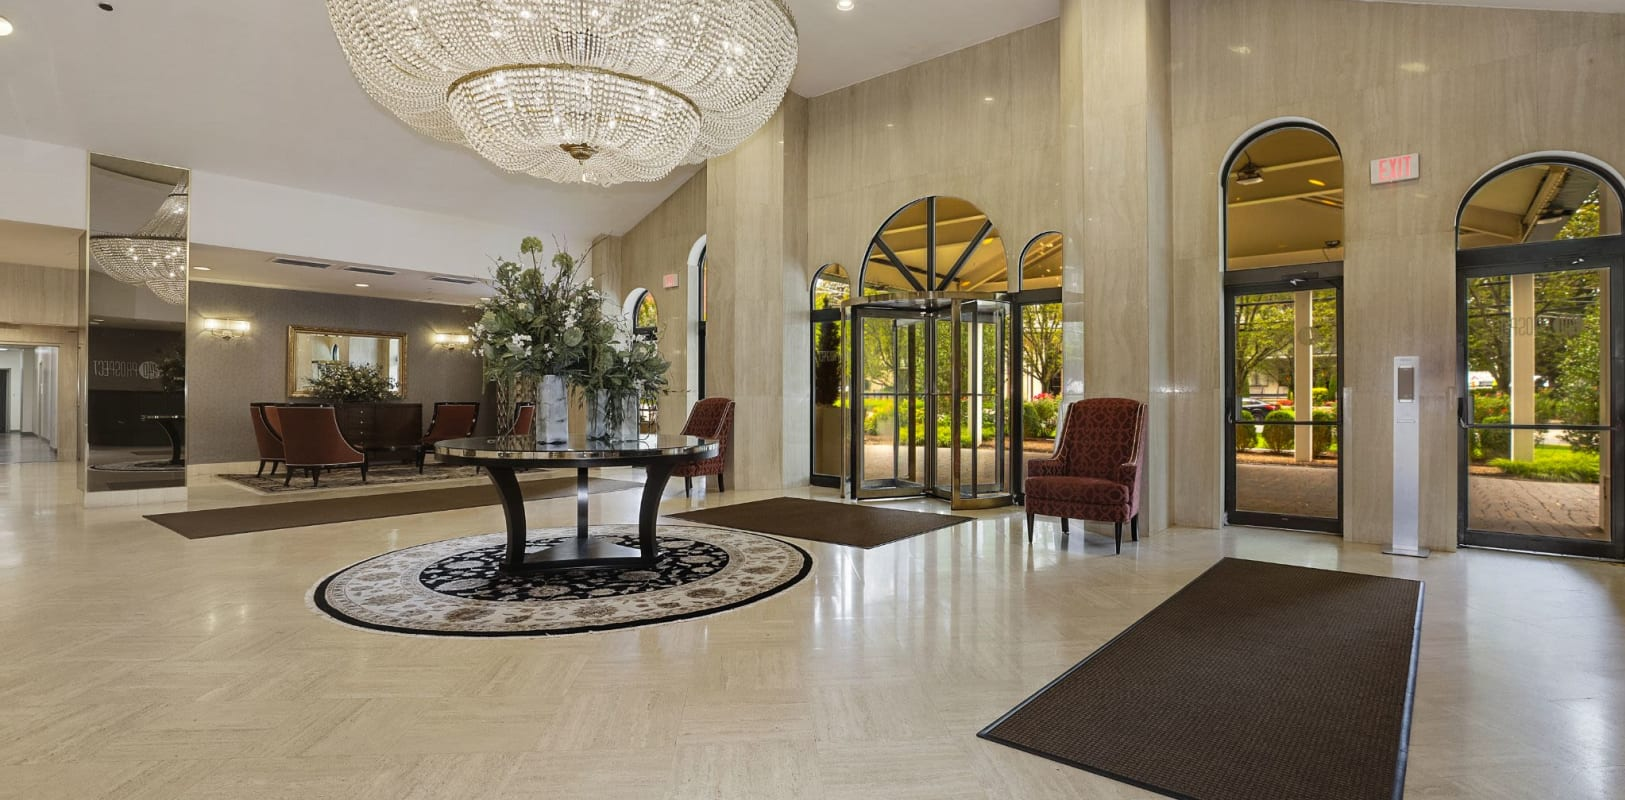 Well decorated lobby at 140 Prospect in Hackensack, New Jersey